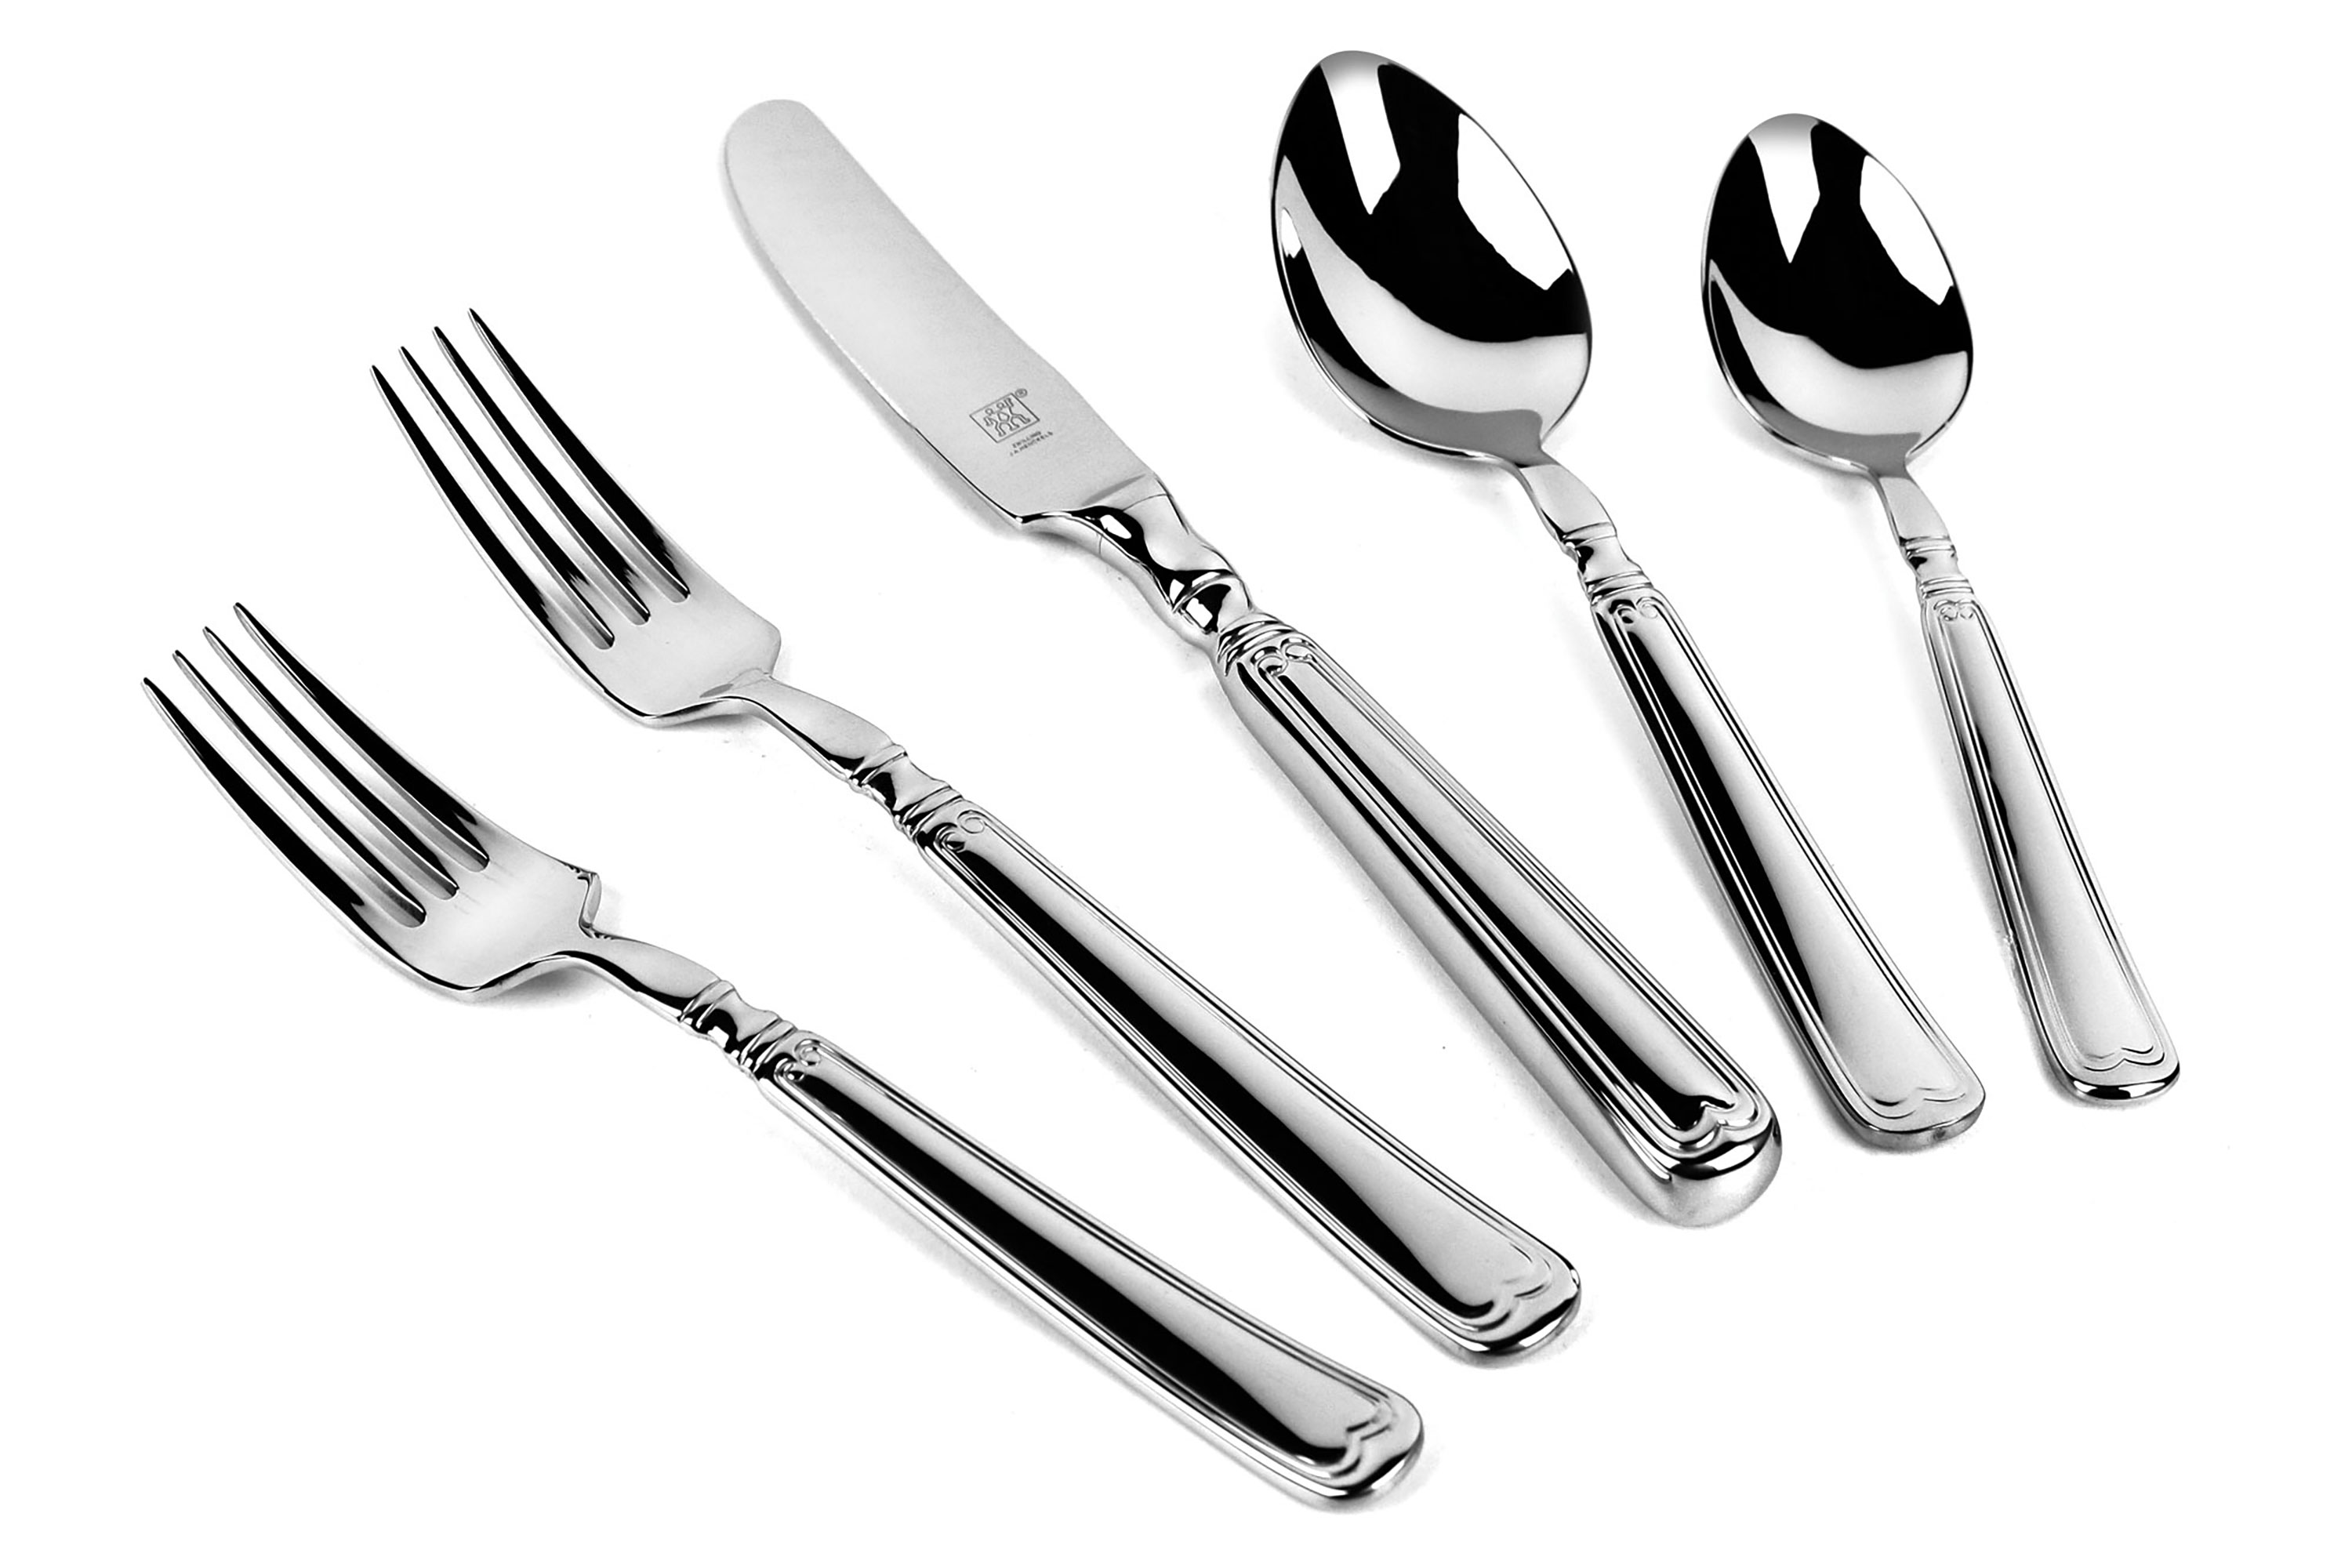 Discount Stainless Flatware Zwilling J A Henckels 45 Piece Vintage 1876 Stainless Steel Flatware Set